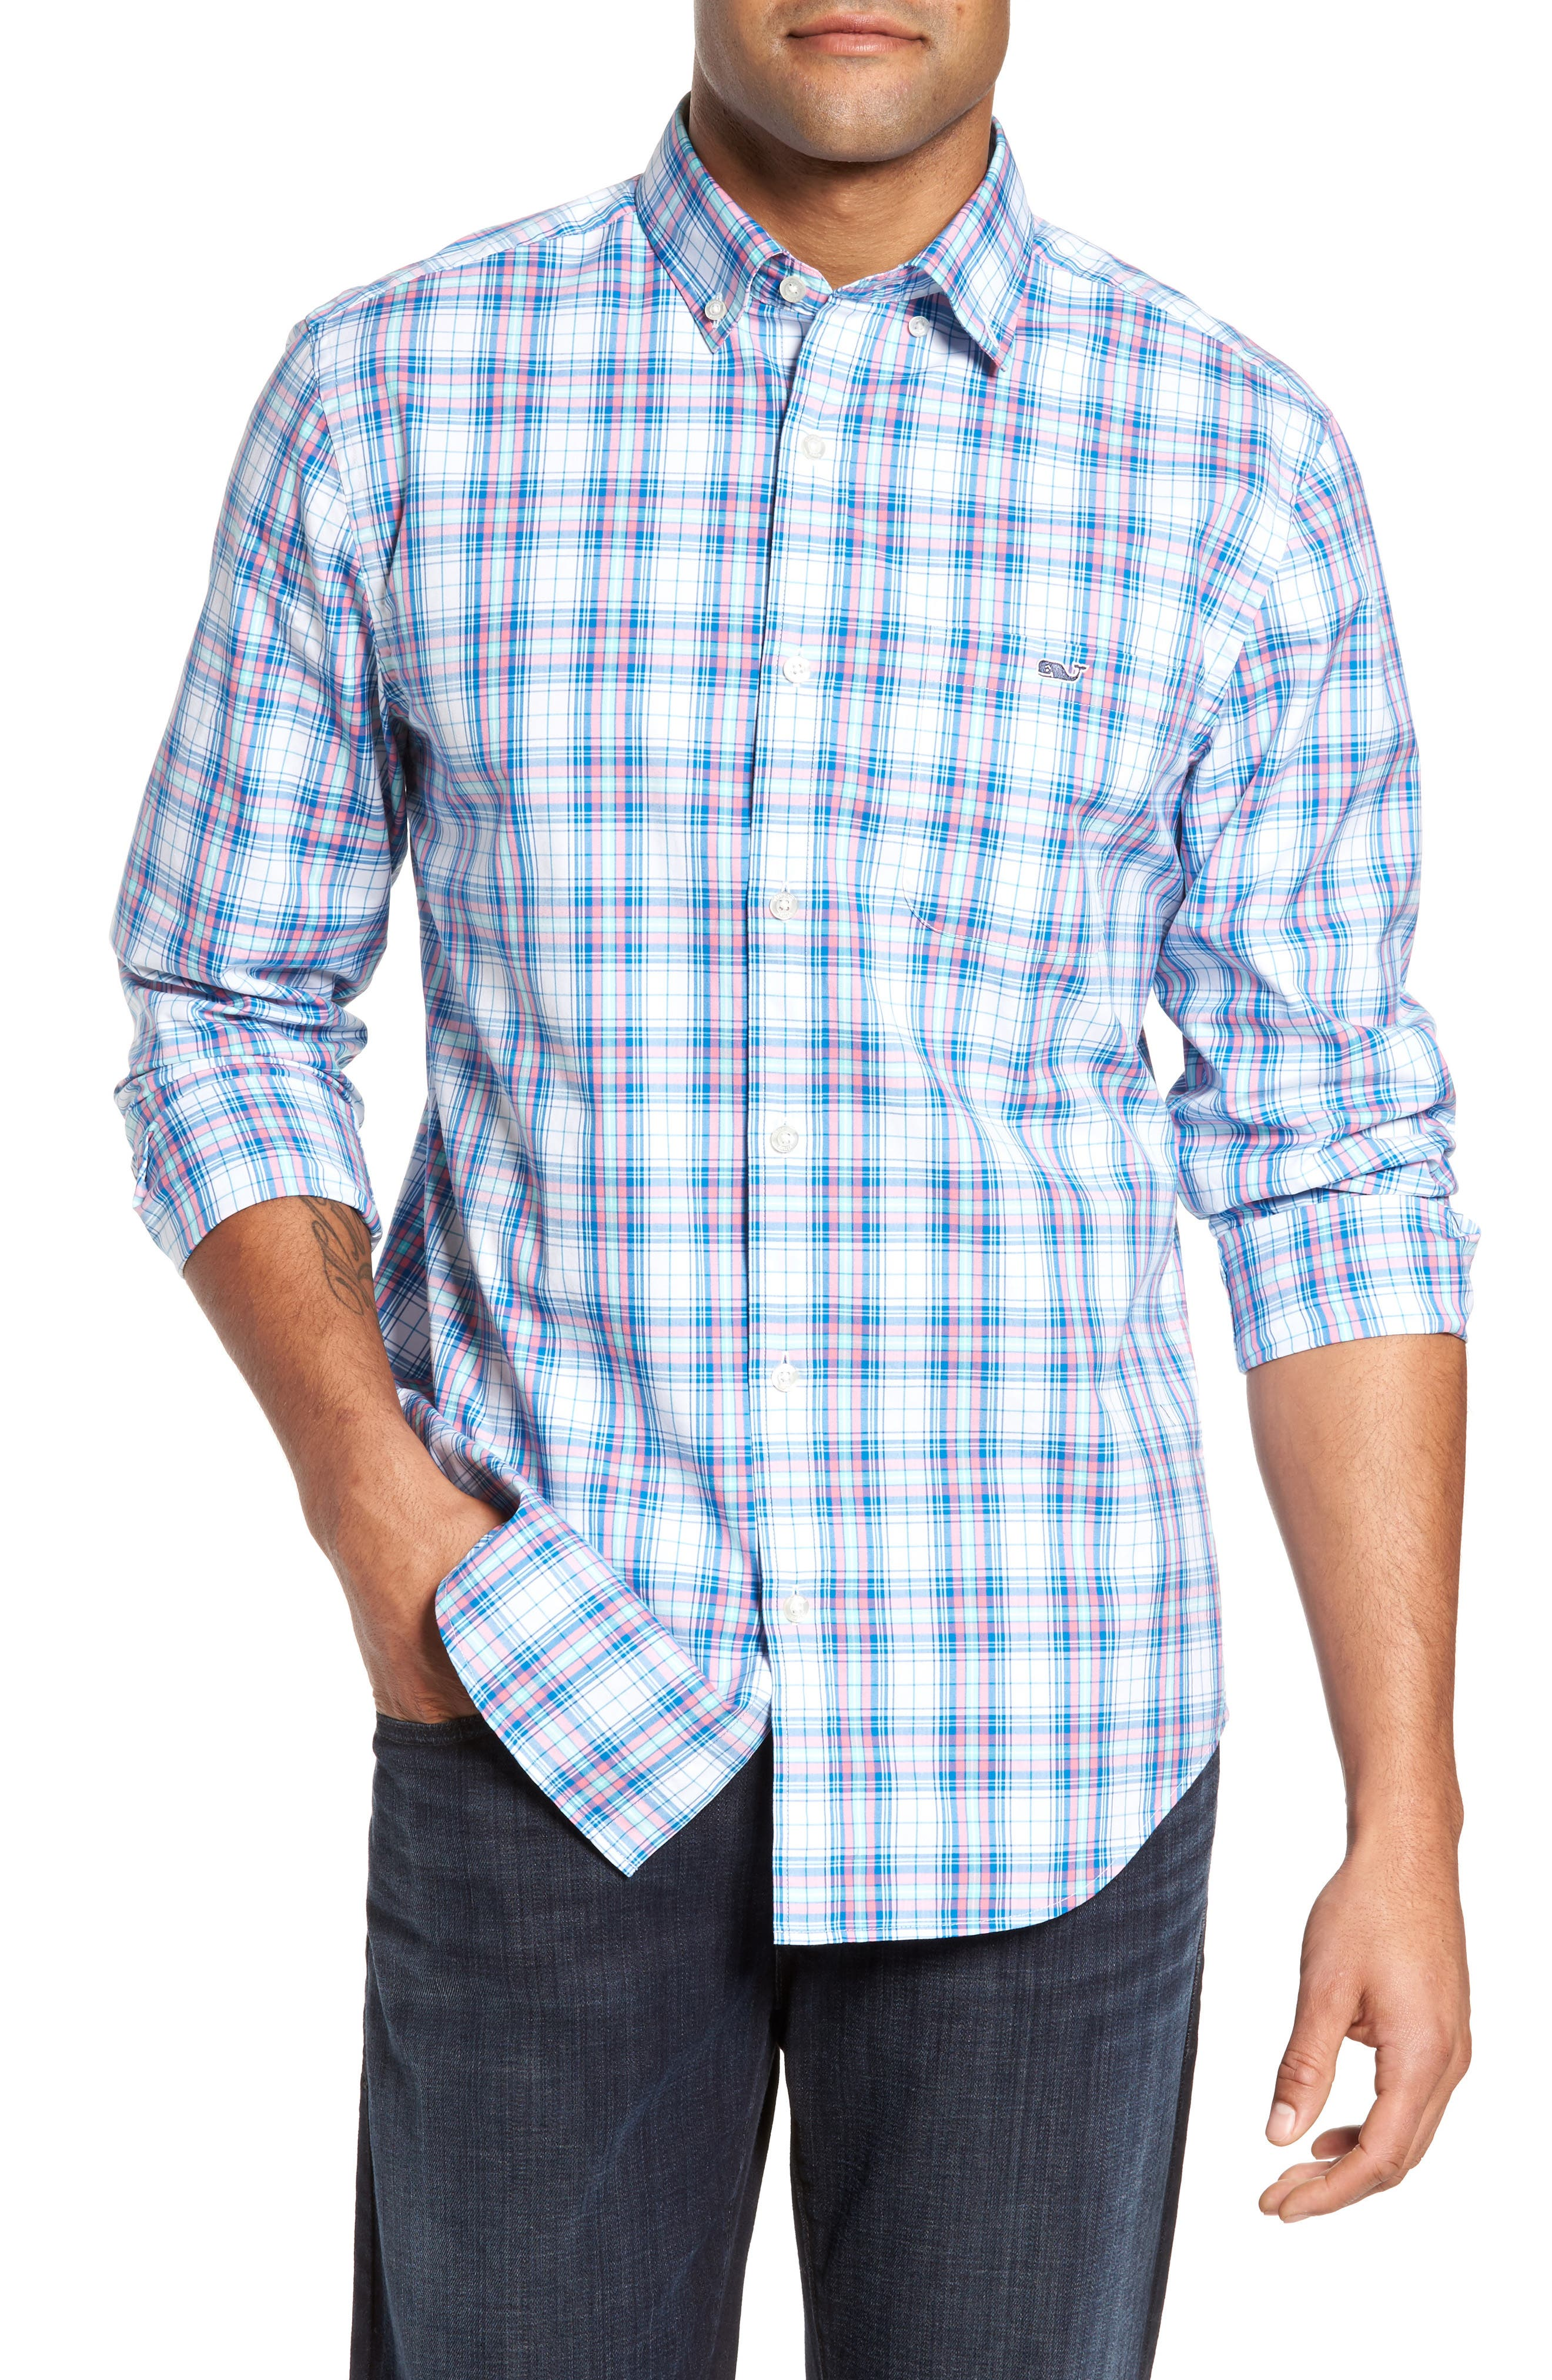 Alternate Image 1 Selected - vineyard vines Tucker Sunset Pines Classic Fit Plaid Sport Shirt